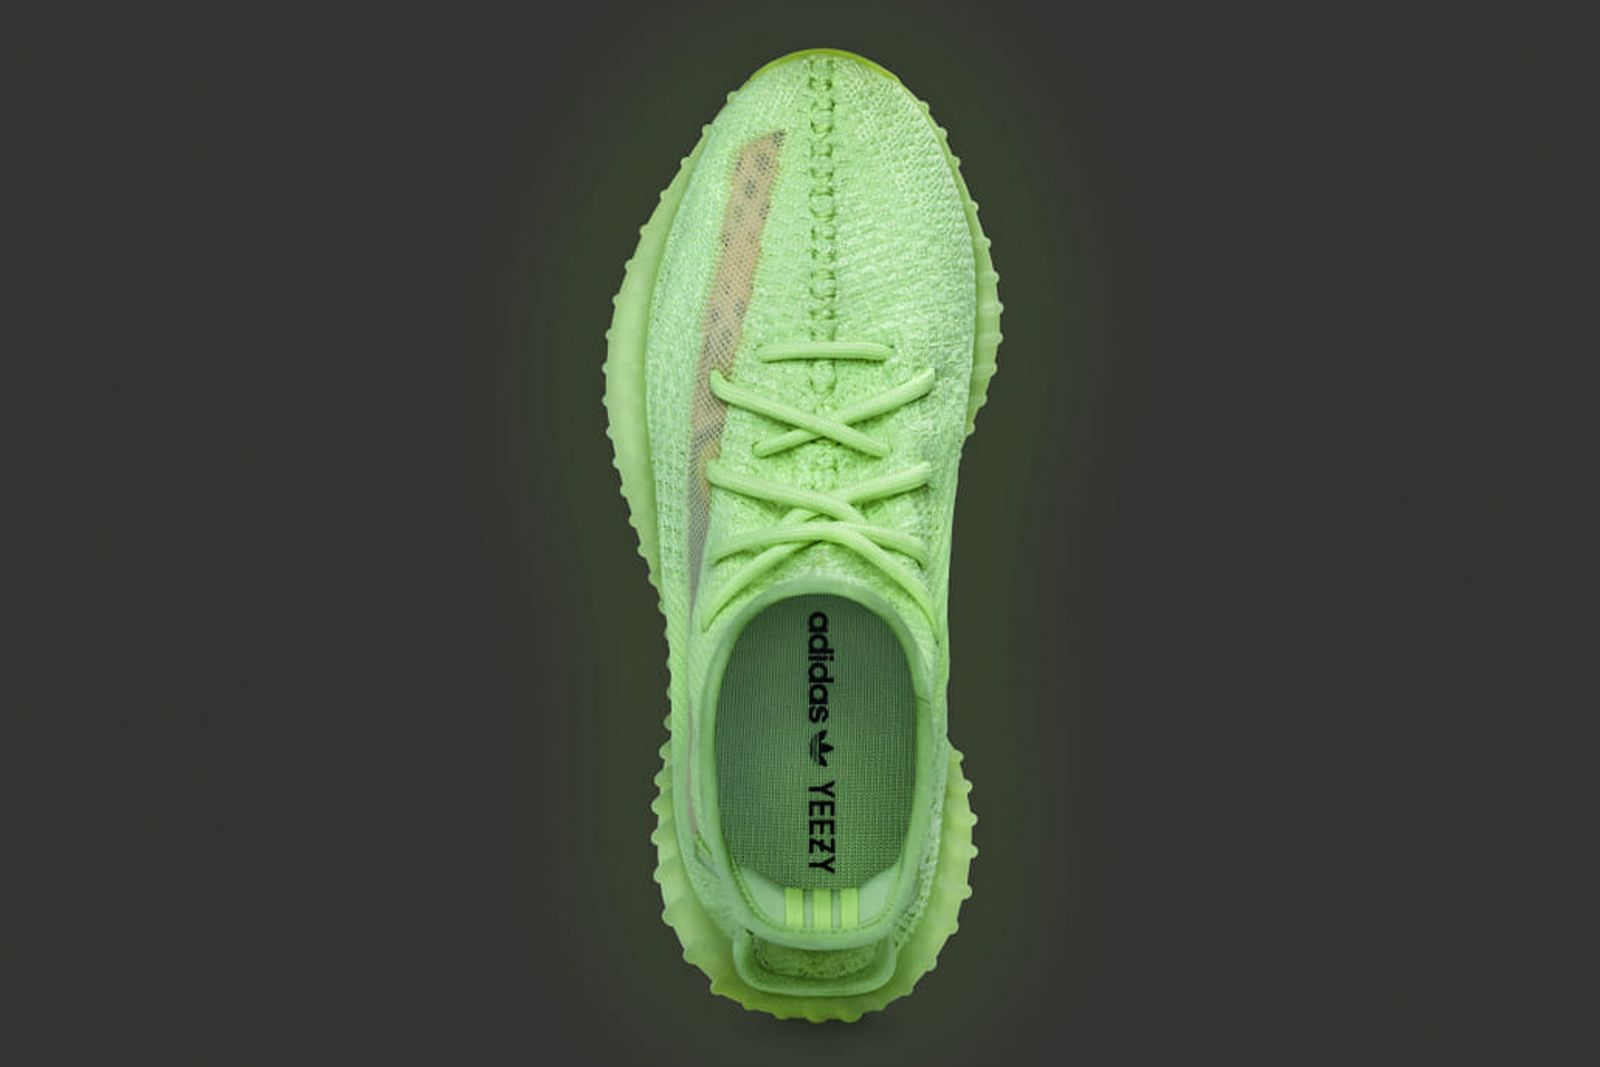 adidas yeezy boost 350 v2 glow dark release date price official adidas Originals YEEZY Boost 350 V2 kanye west